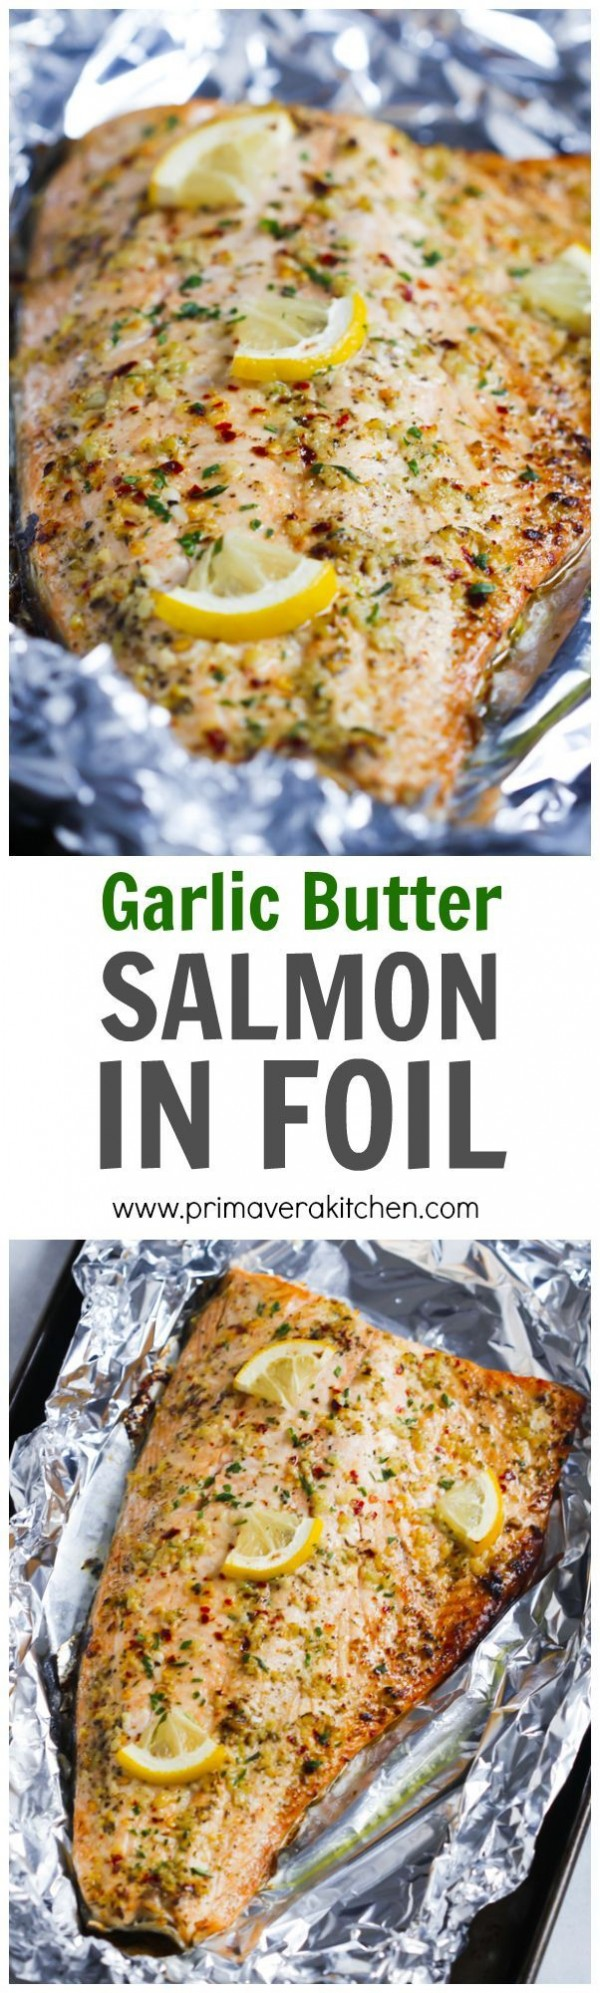 Check out this recipe for garlic butter salmon in foil. Yummy! #RecipeIdeas @recipes_to_go